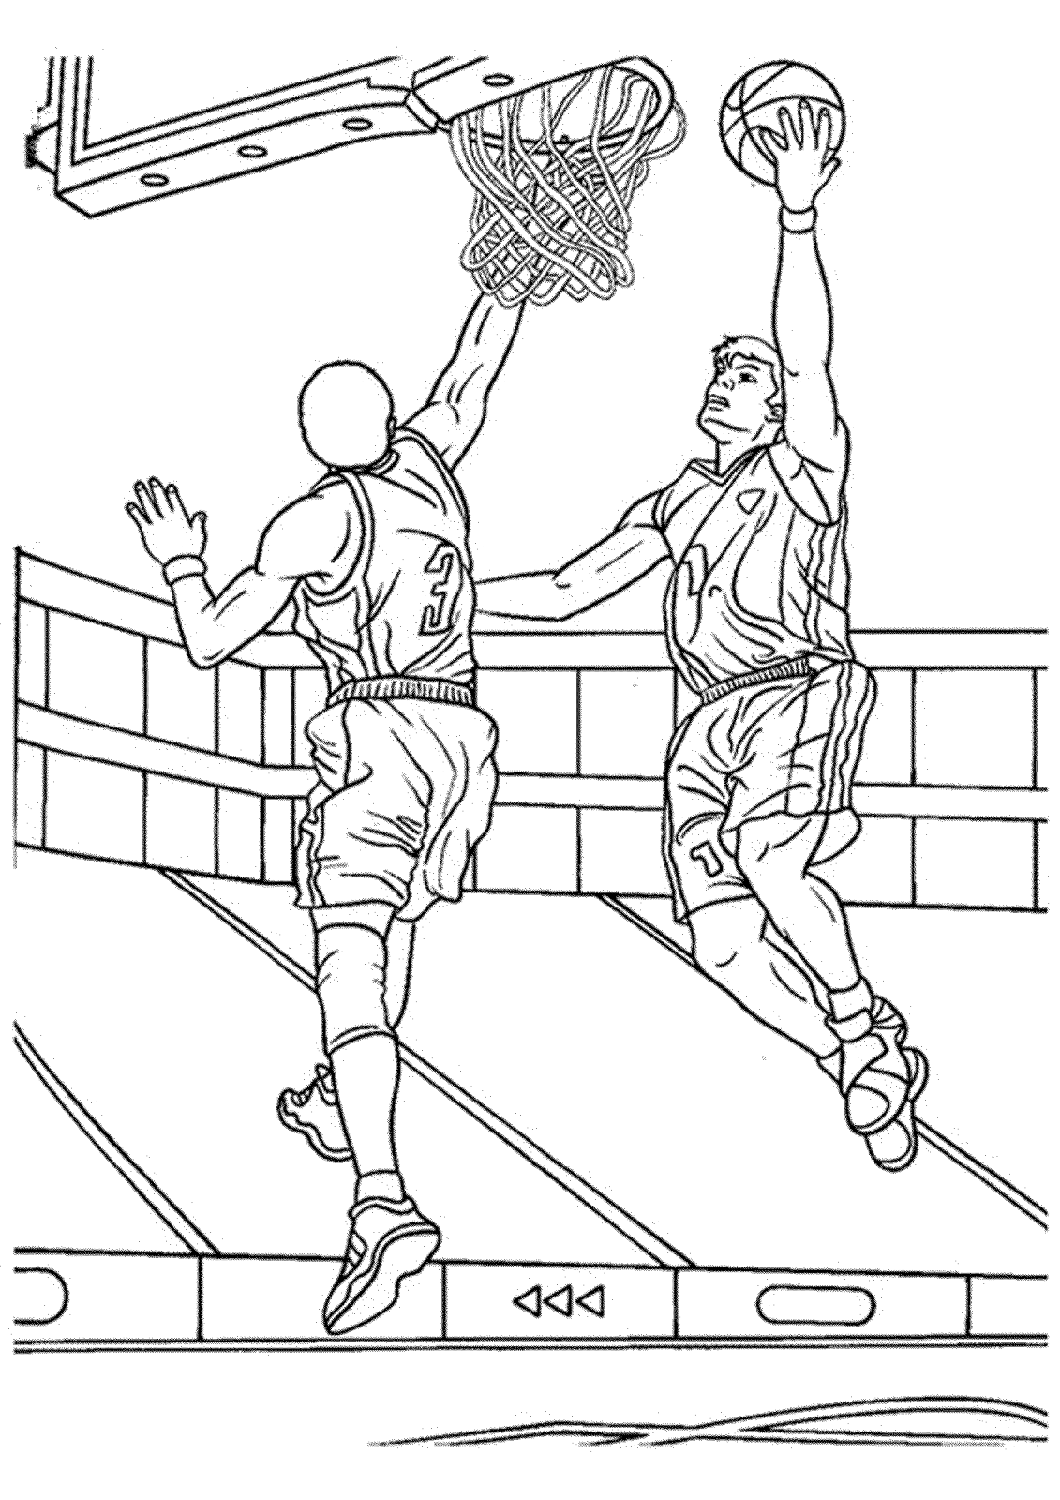 Free Basketball Color Pages